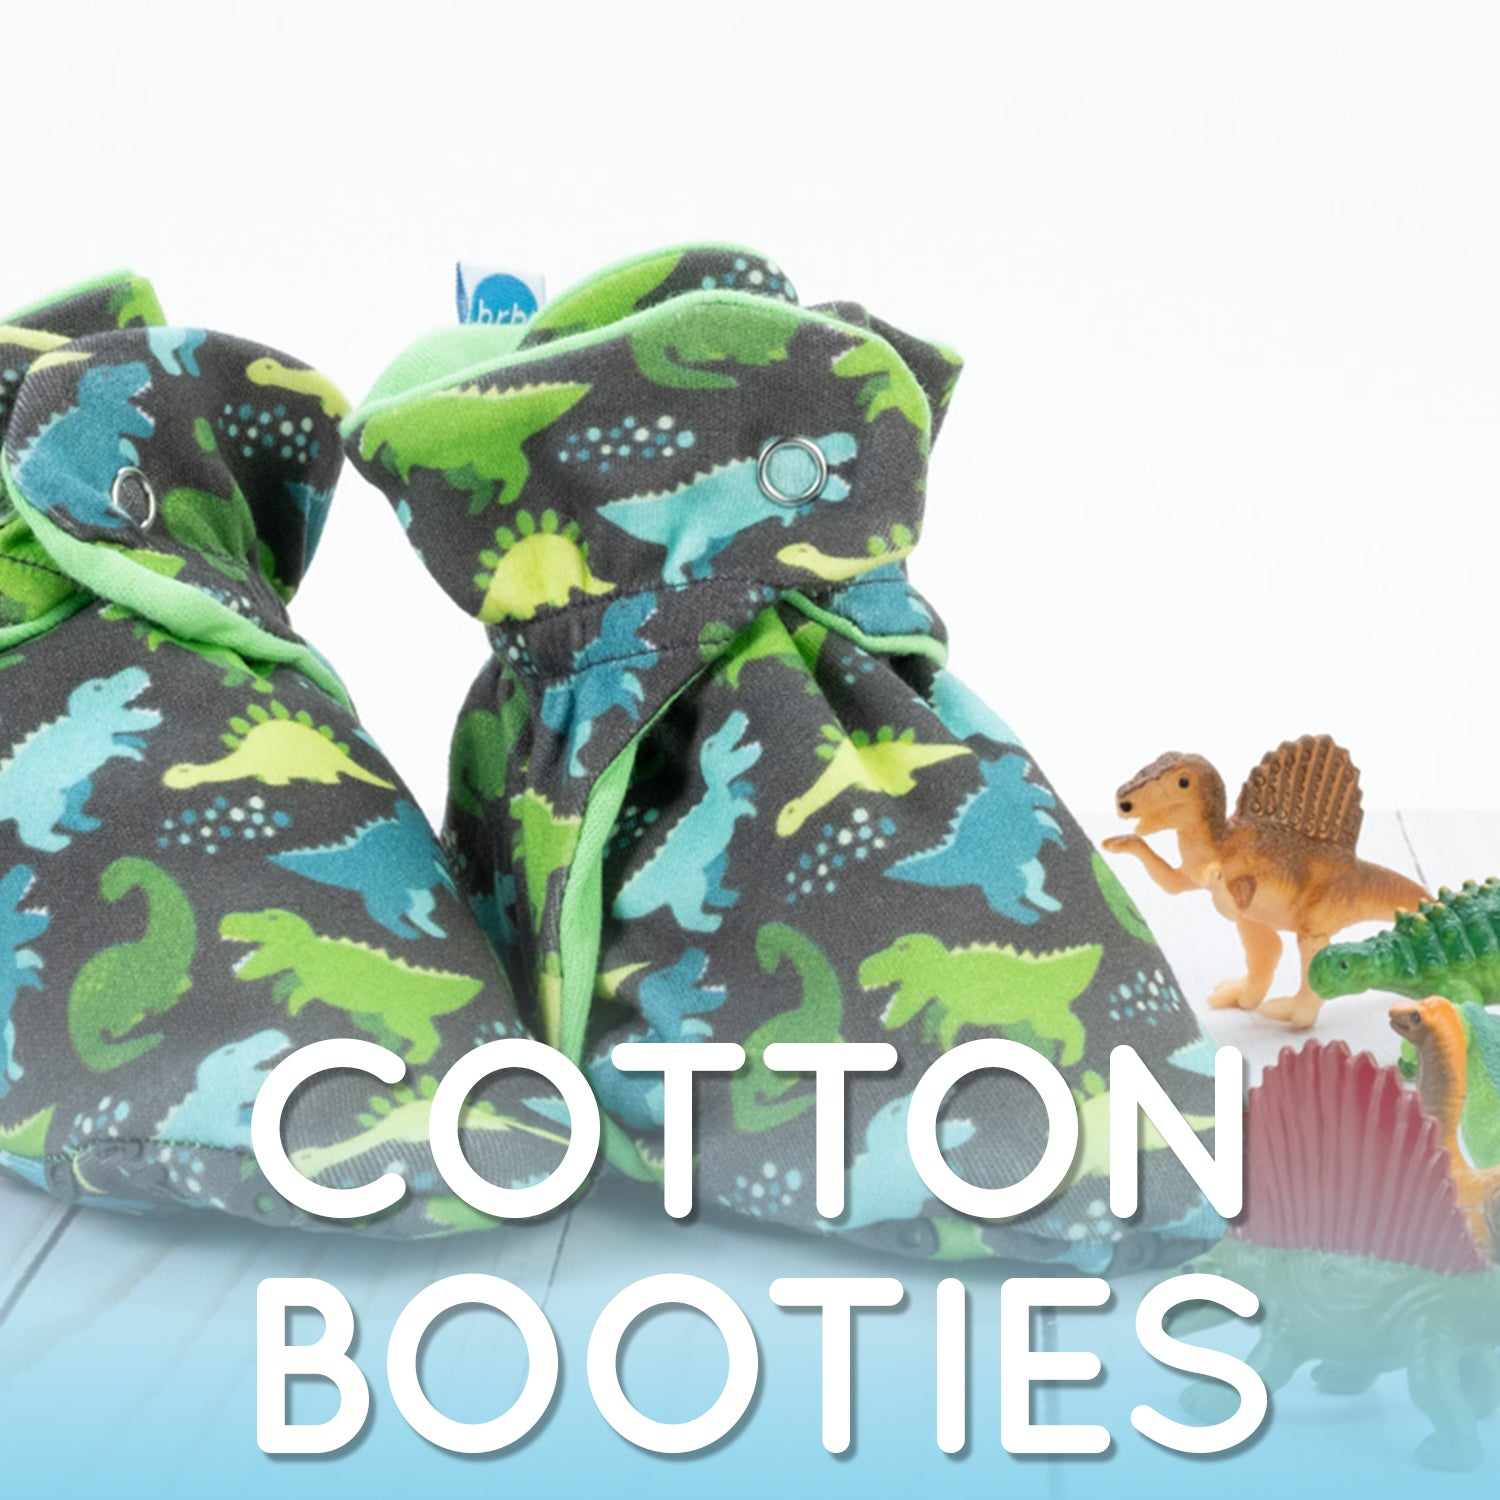 Cotton Booties